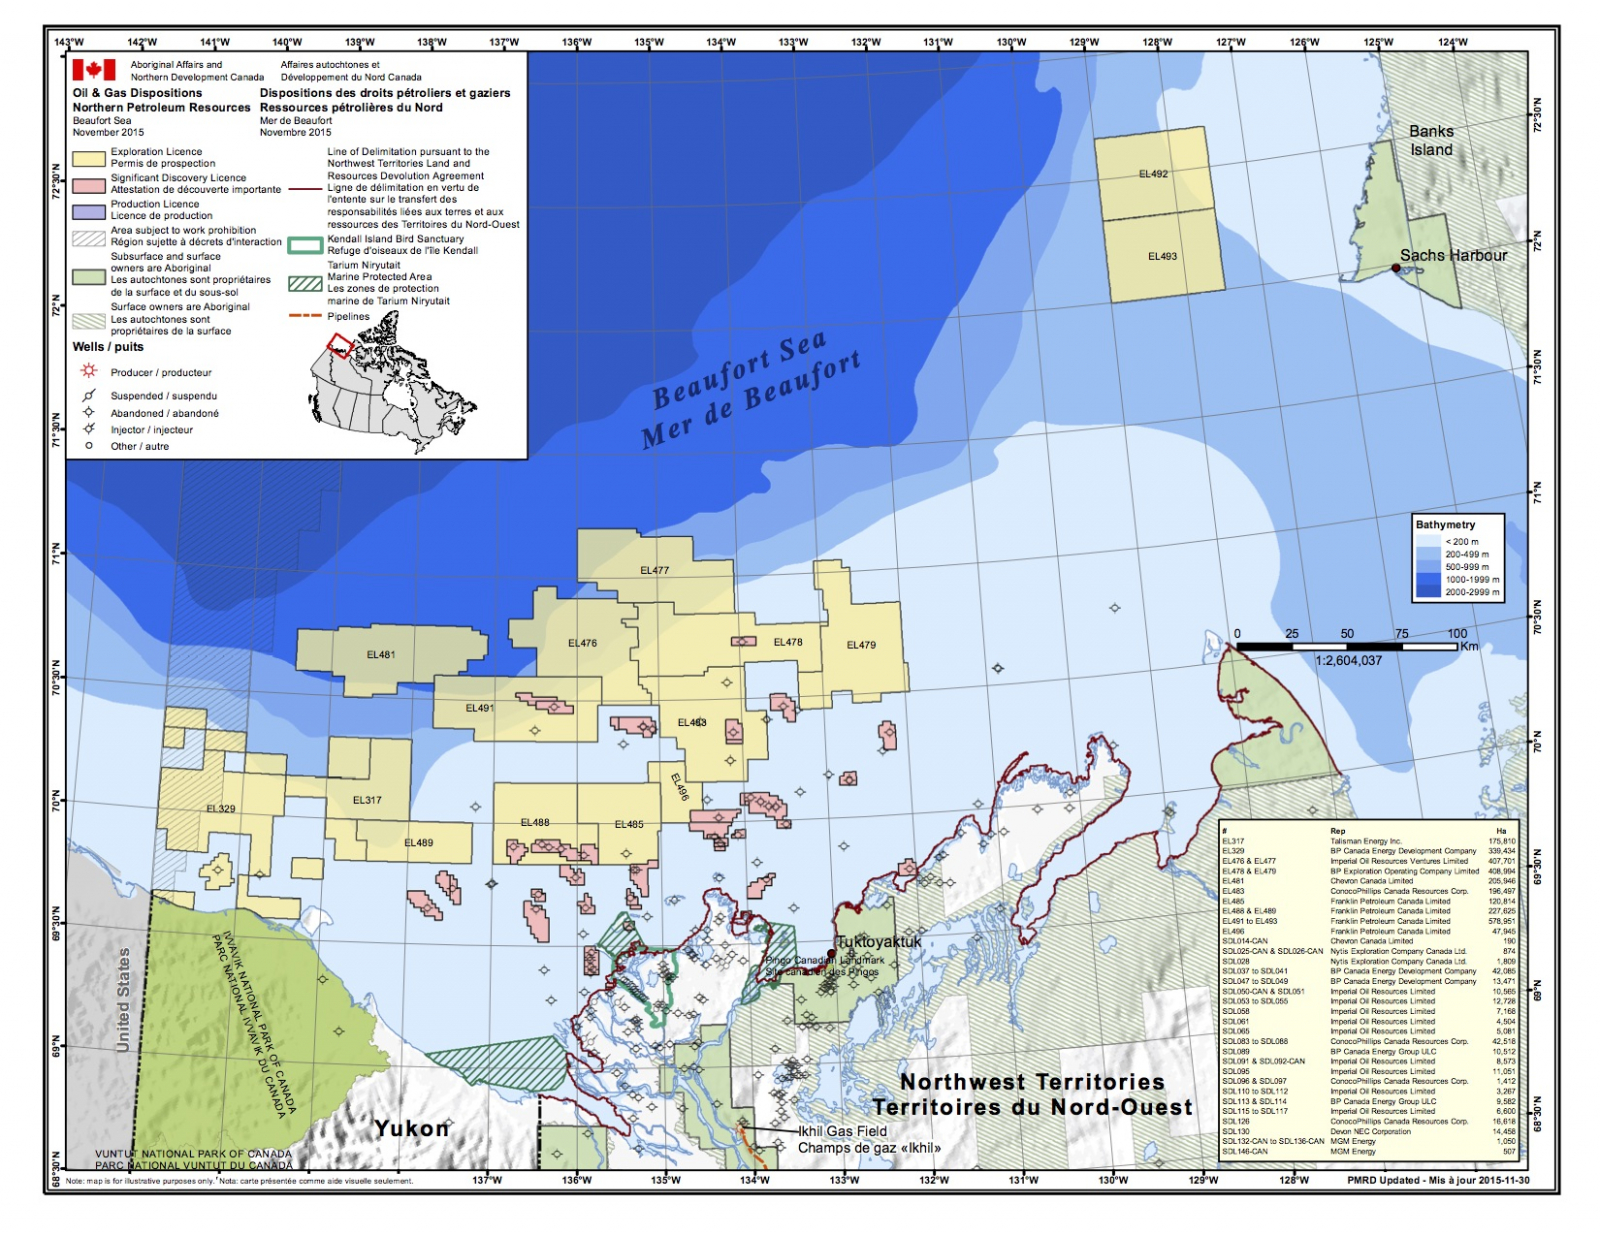 Oil and gas resources map in Arctic Ocean